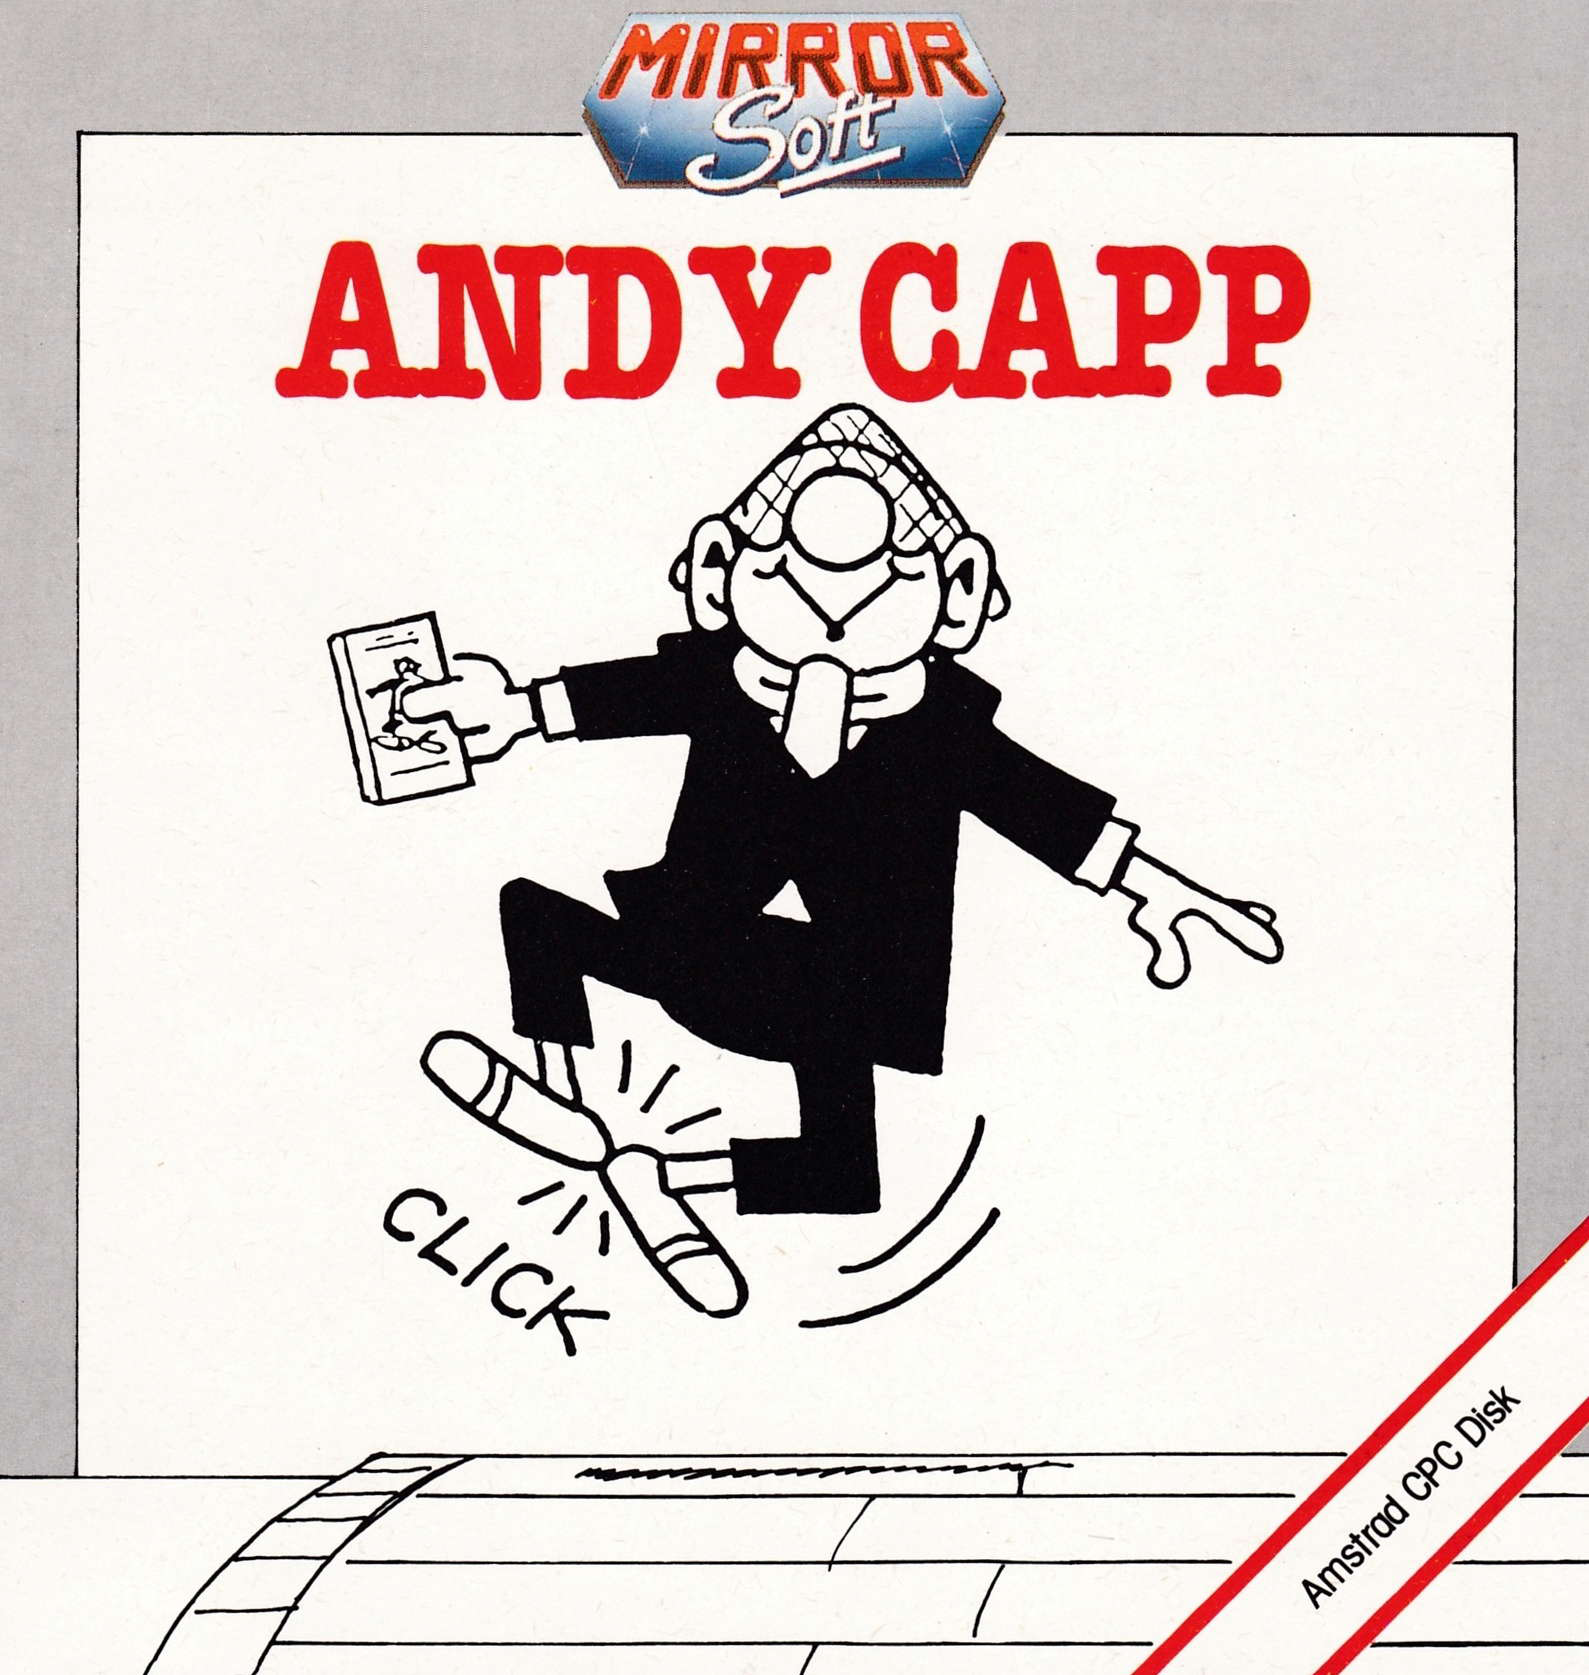 screenshot of the Amstrad CPC game Andy Capp by GameBase CPC